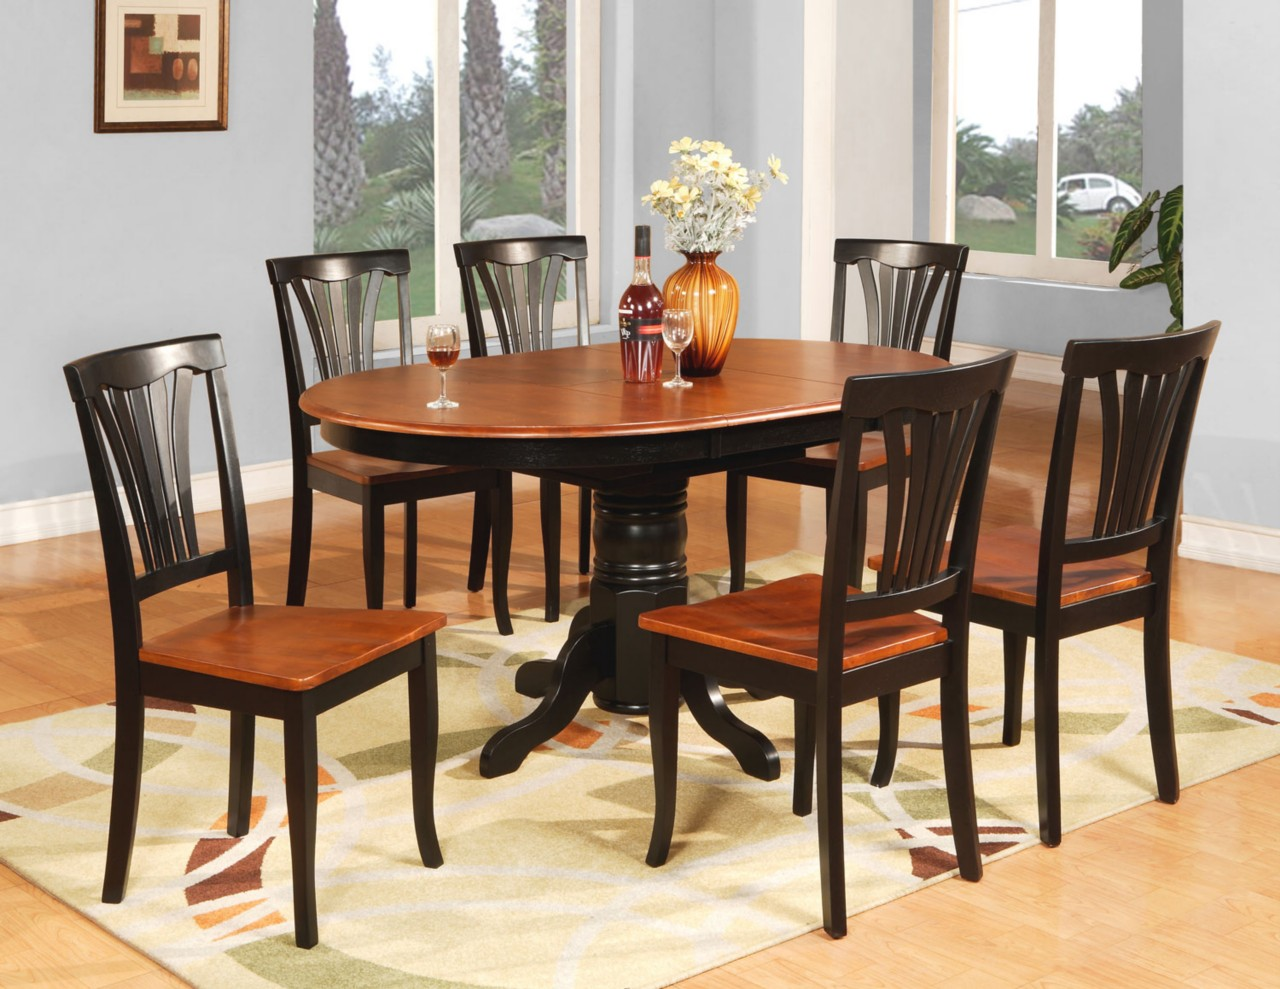 7 pc oval dinette kitchen dining room table 6 chairs ebay for Kitchen table with stools